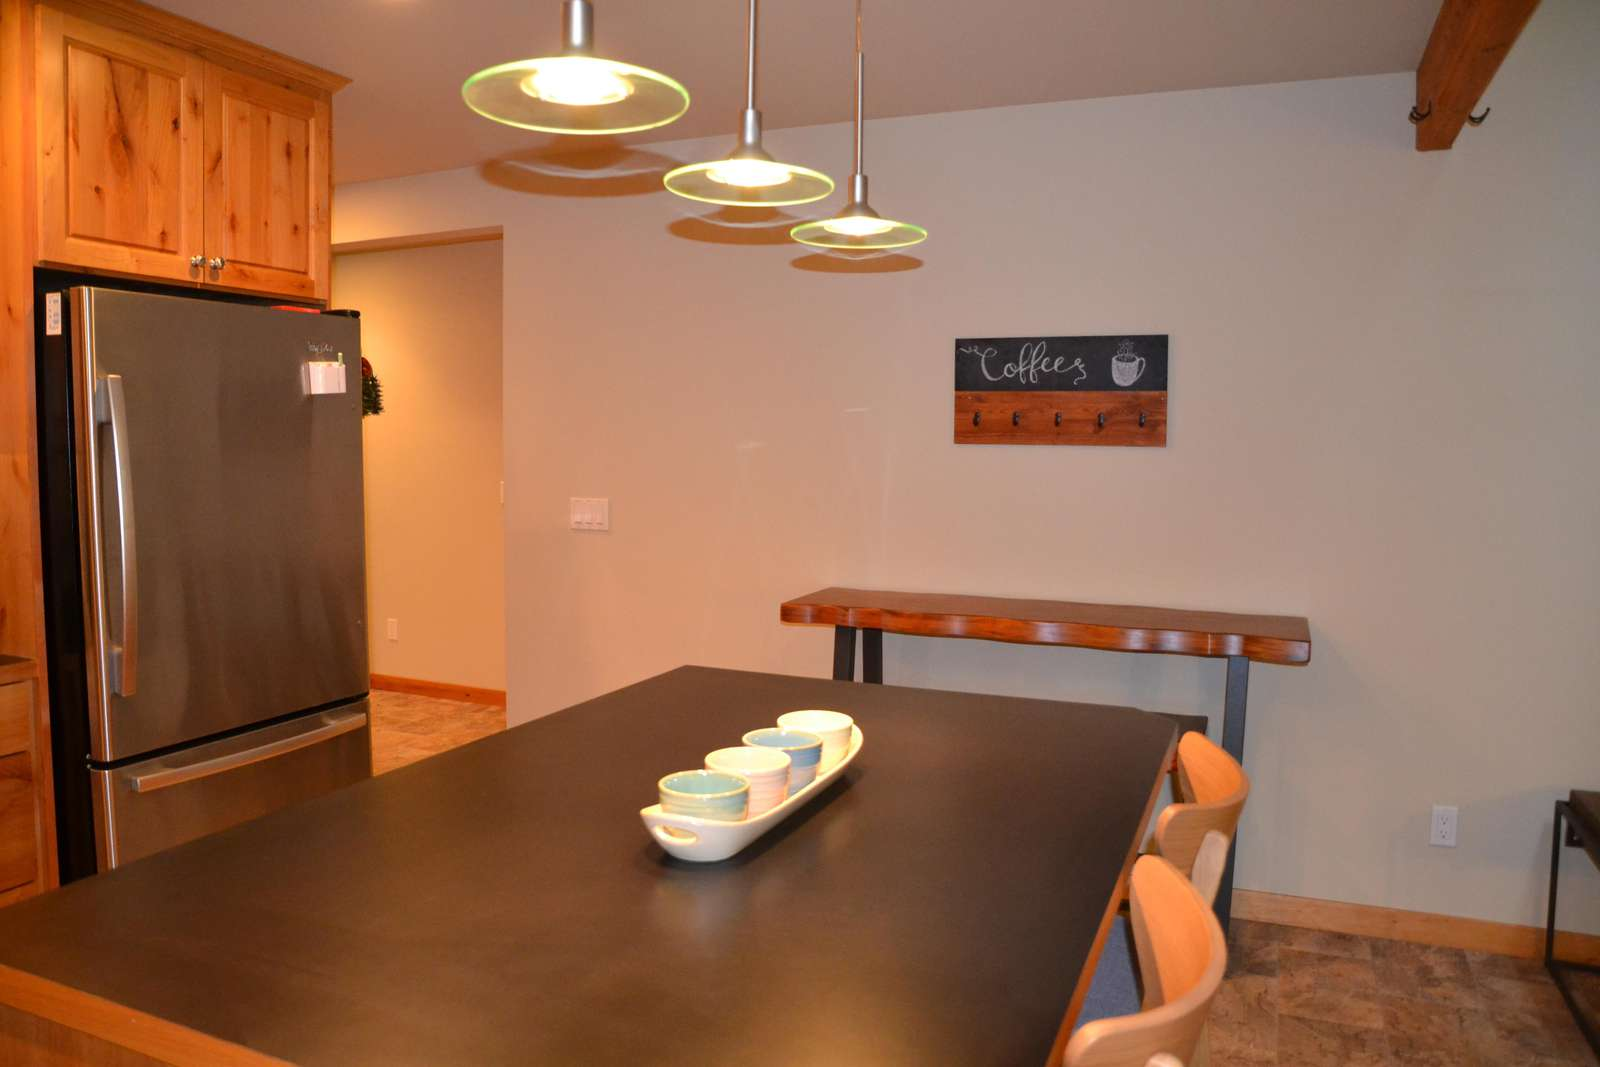 Kitchen Island Counter & Seating